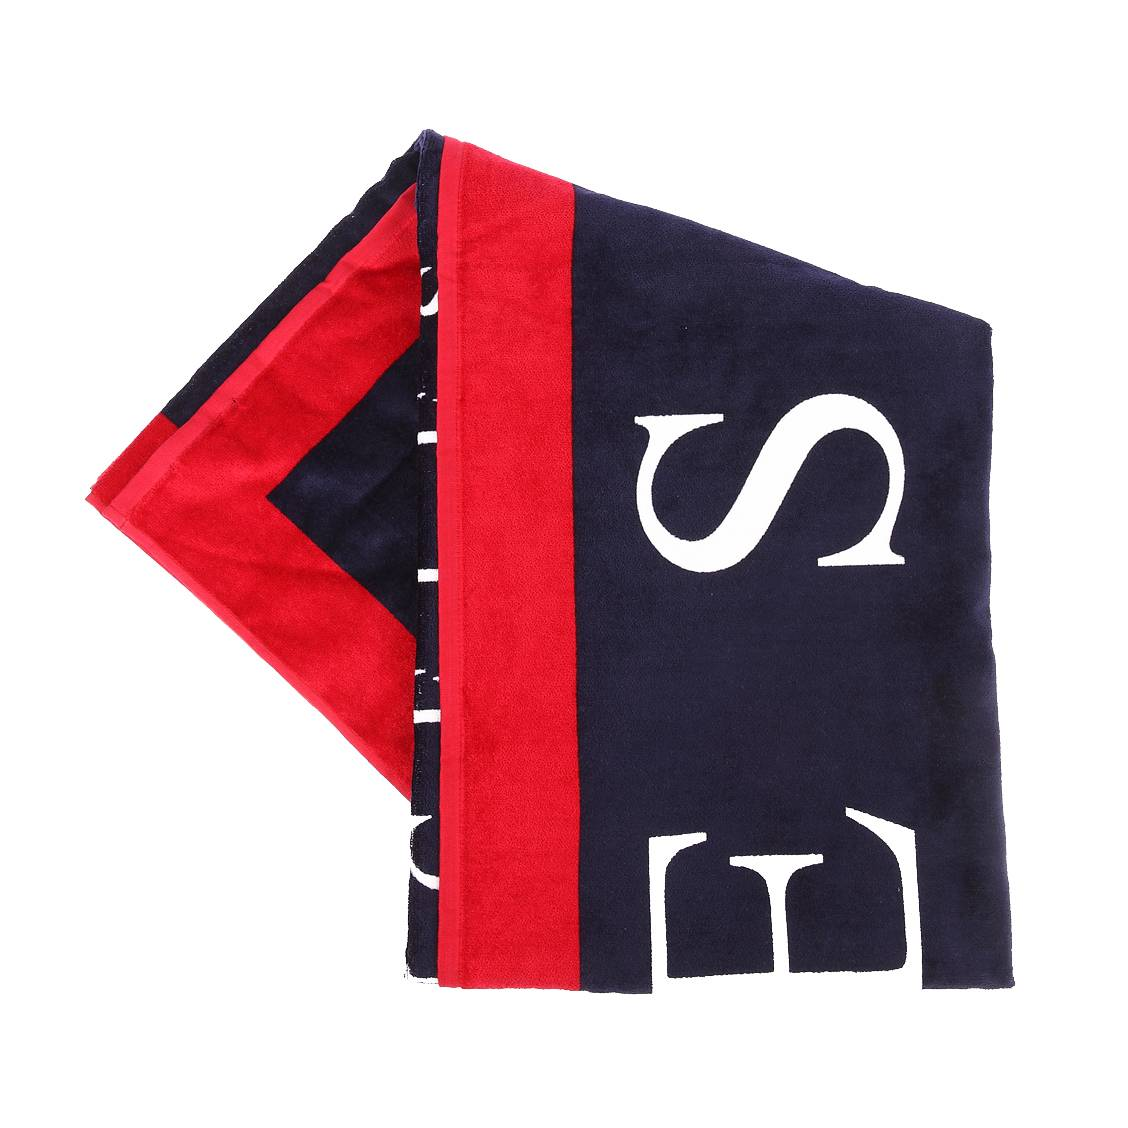 serviette de plage guess bleu marine bordure rouge rue des hommes. Black Bedroom Furniture Sets. Home Design Ideas